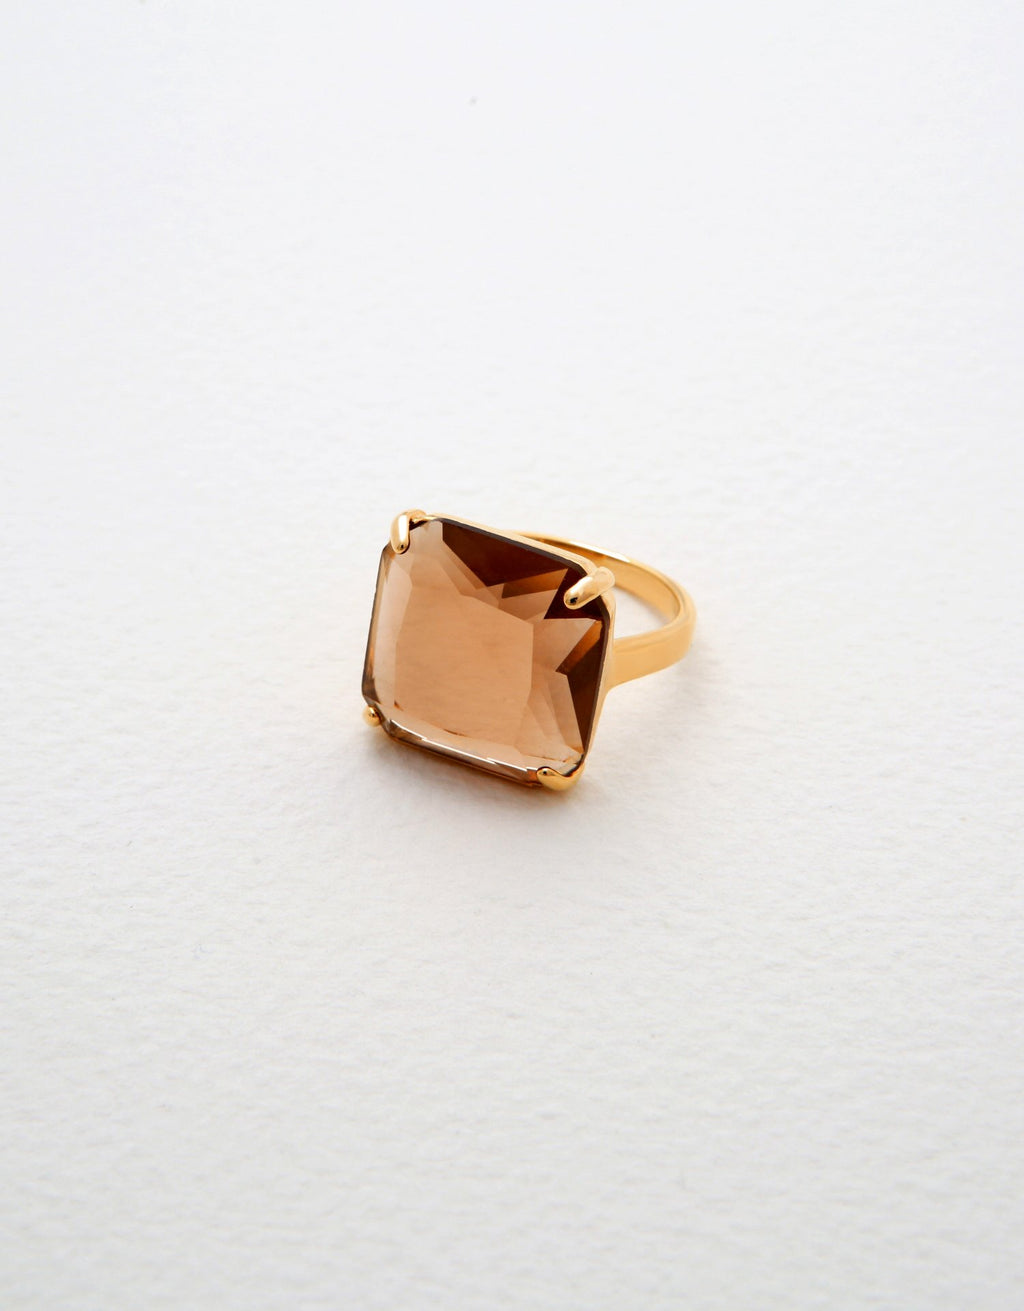 Andie Ring, Bearfruit, Jewelry